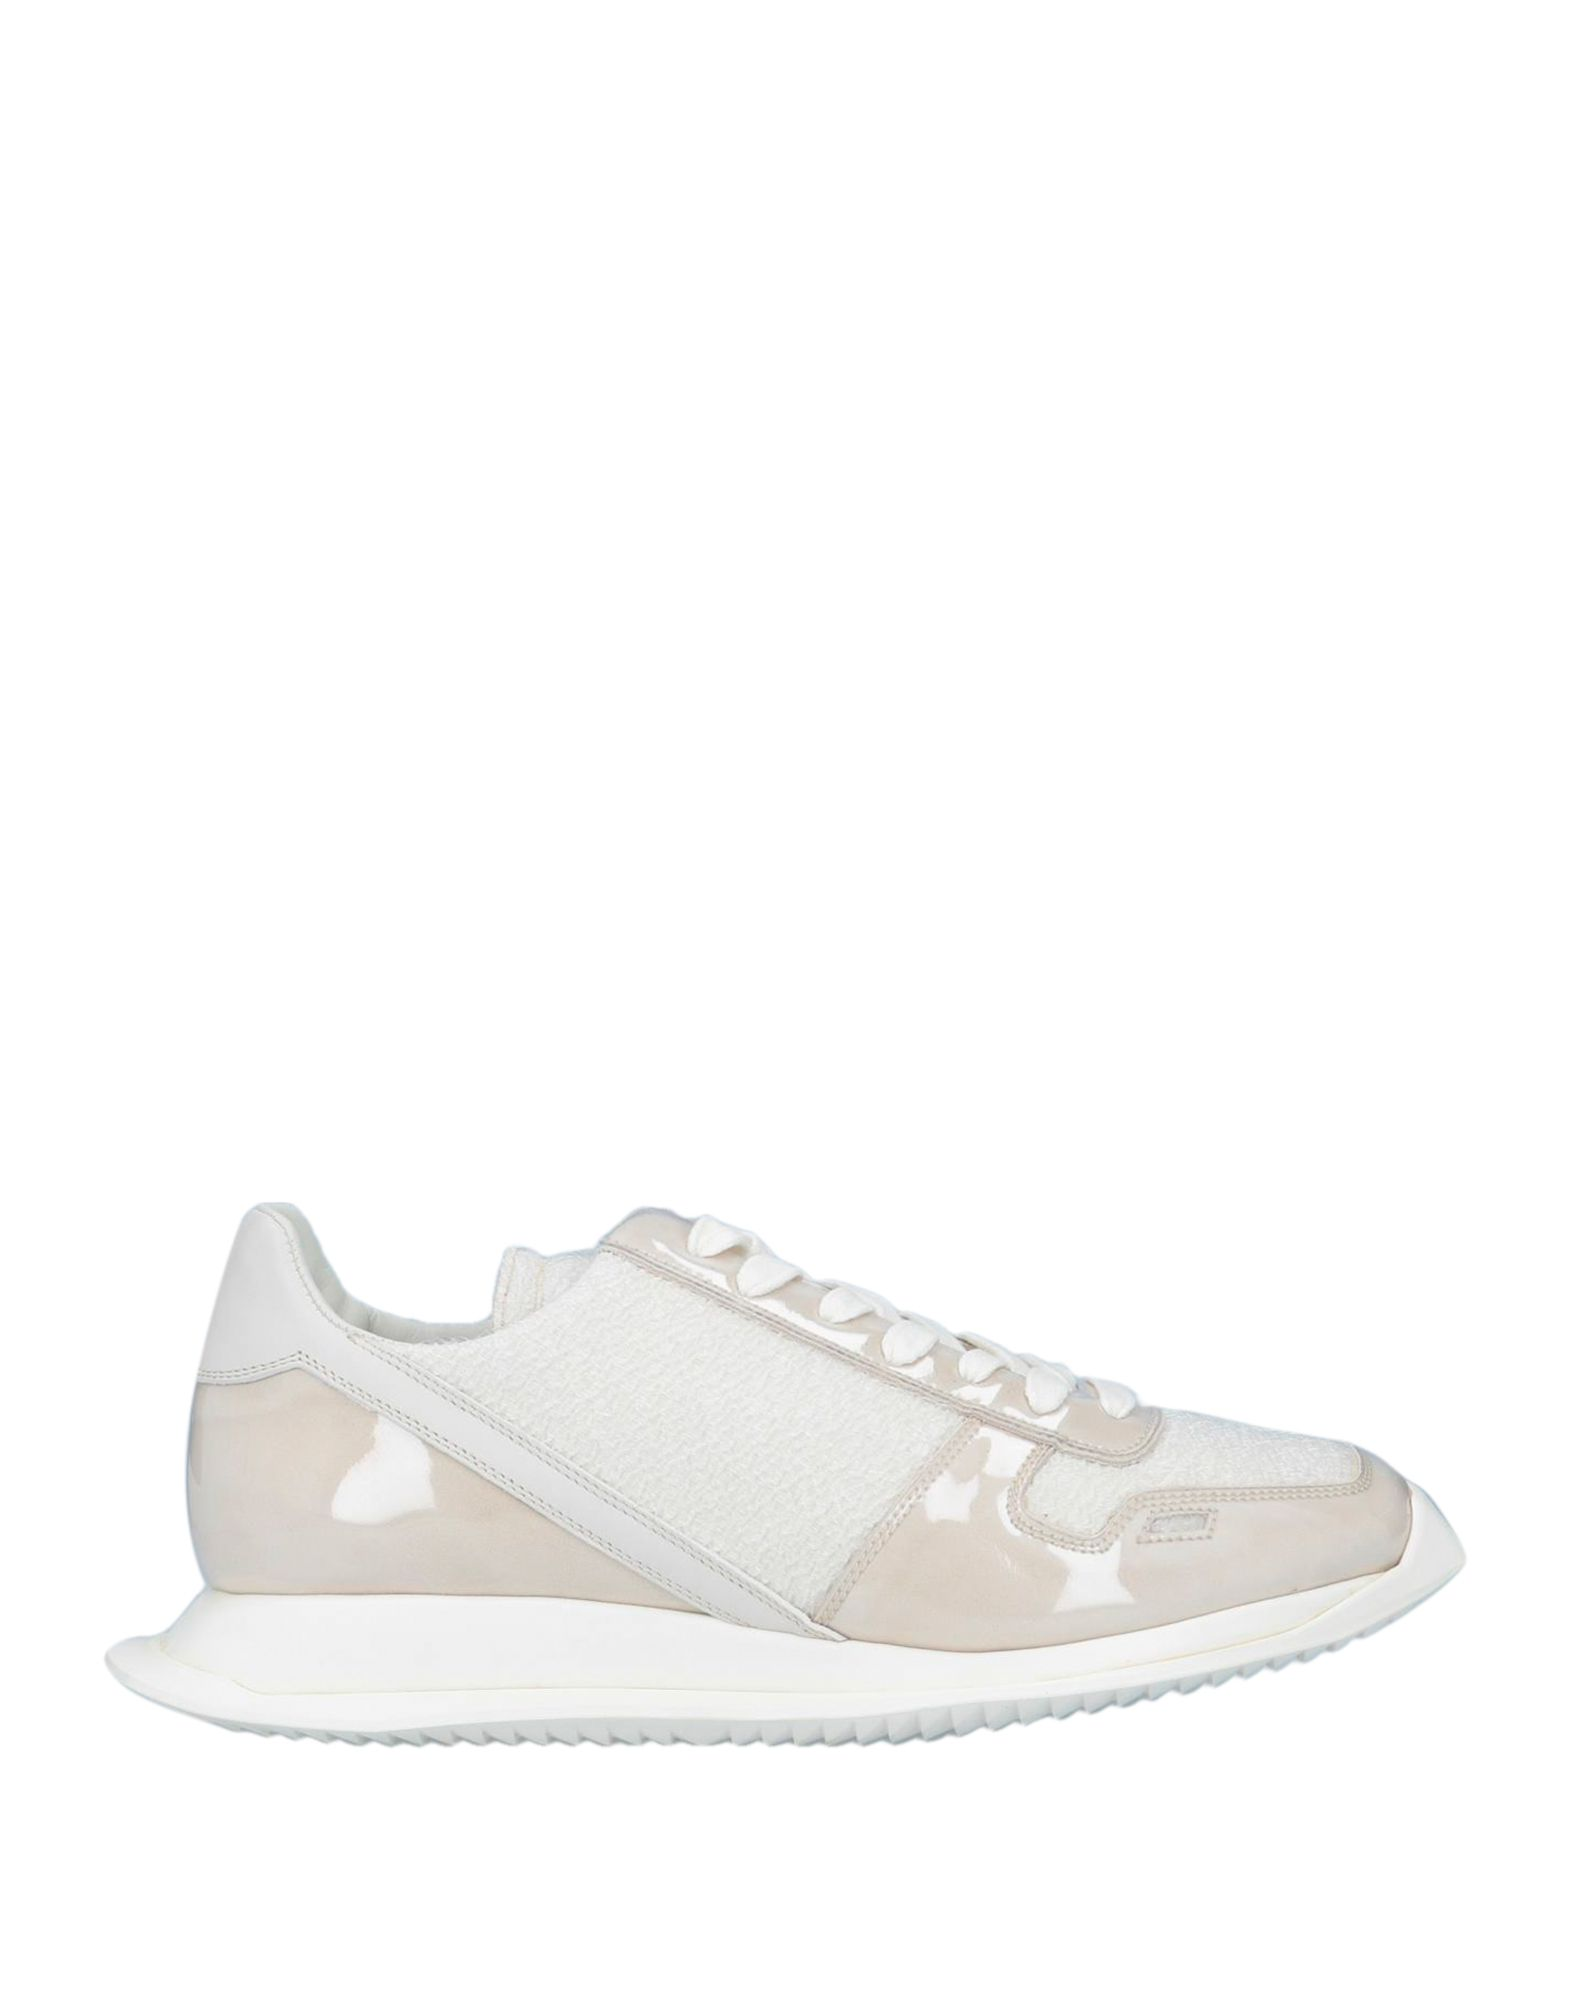 RICK OWENS Sneakers. rubbery effect, no appliqués, solid color, laces, round toeline, flat, leather lining, rubber cleated sole, contains non-textile parts of animal origin. Textile fibers, Plastic, Soft Leather